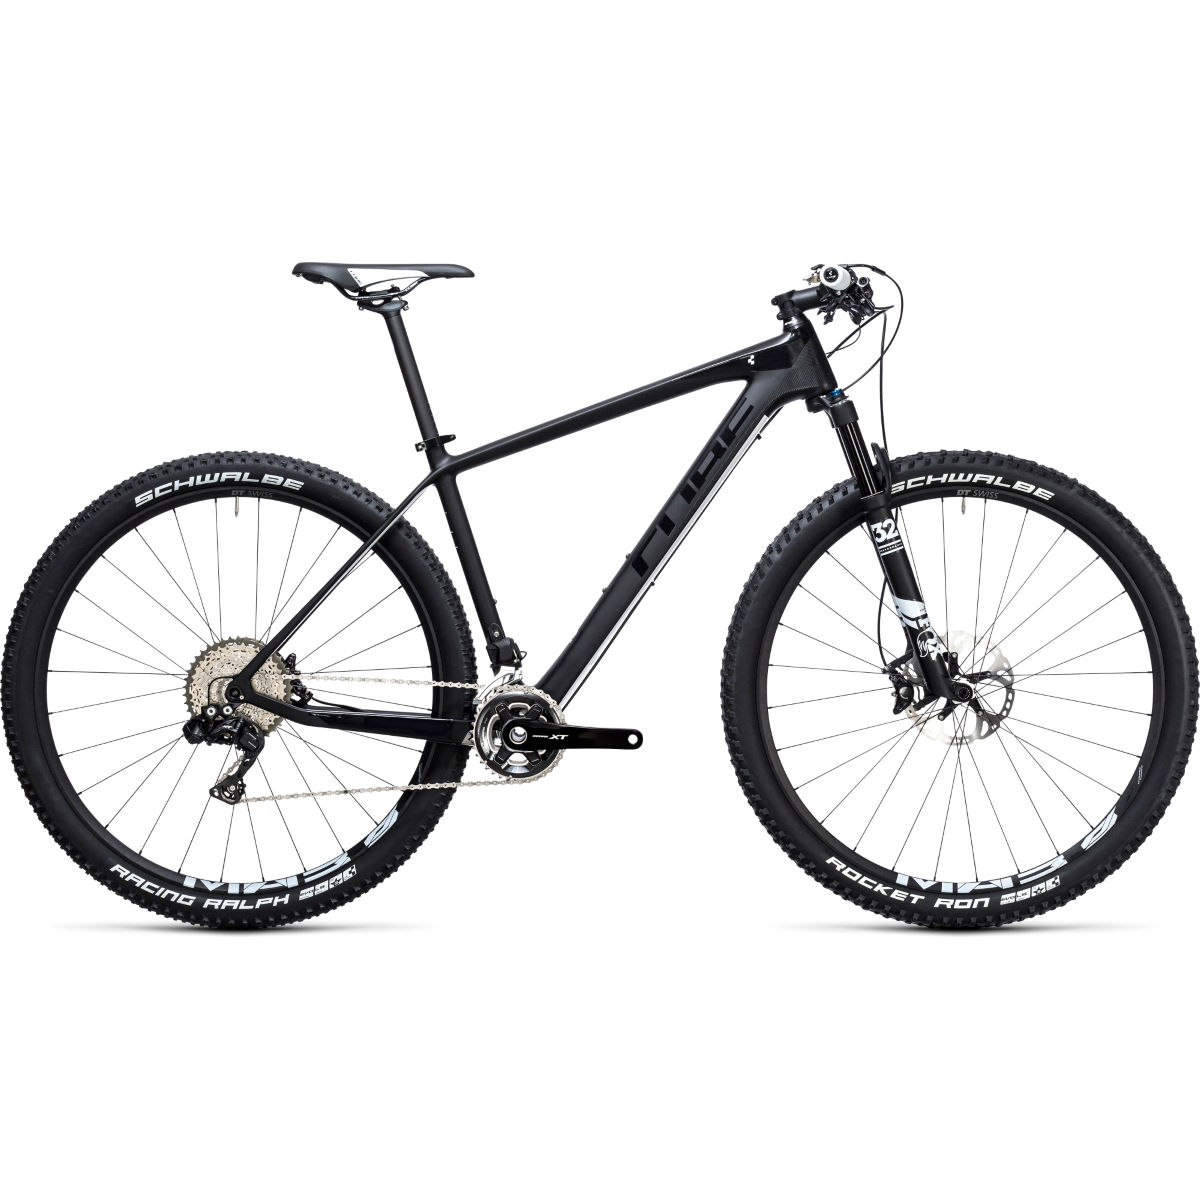 VTT semi-rigide Cube Elite C:62 SL 29 pouces (2017) - 21'' Stock Bike